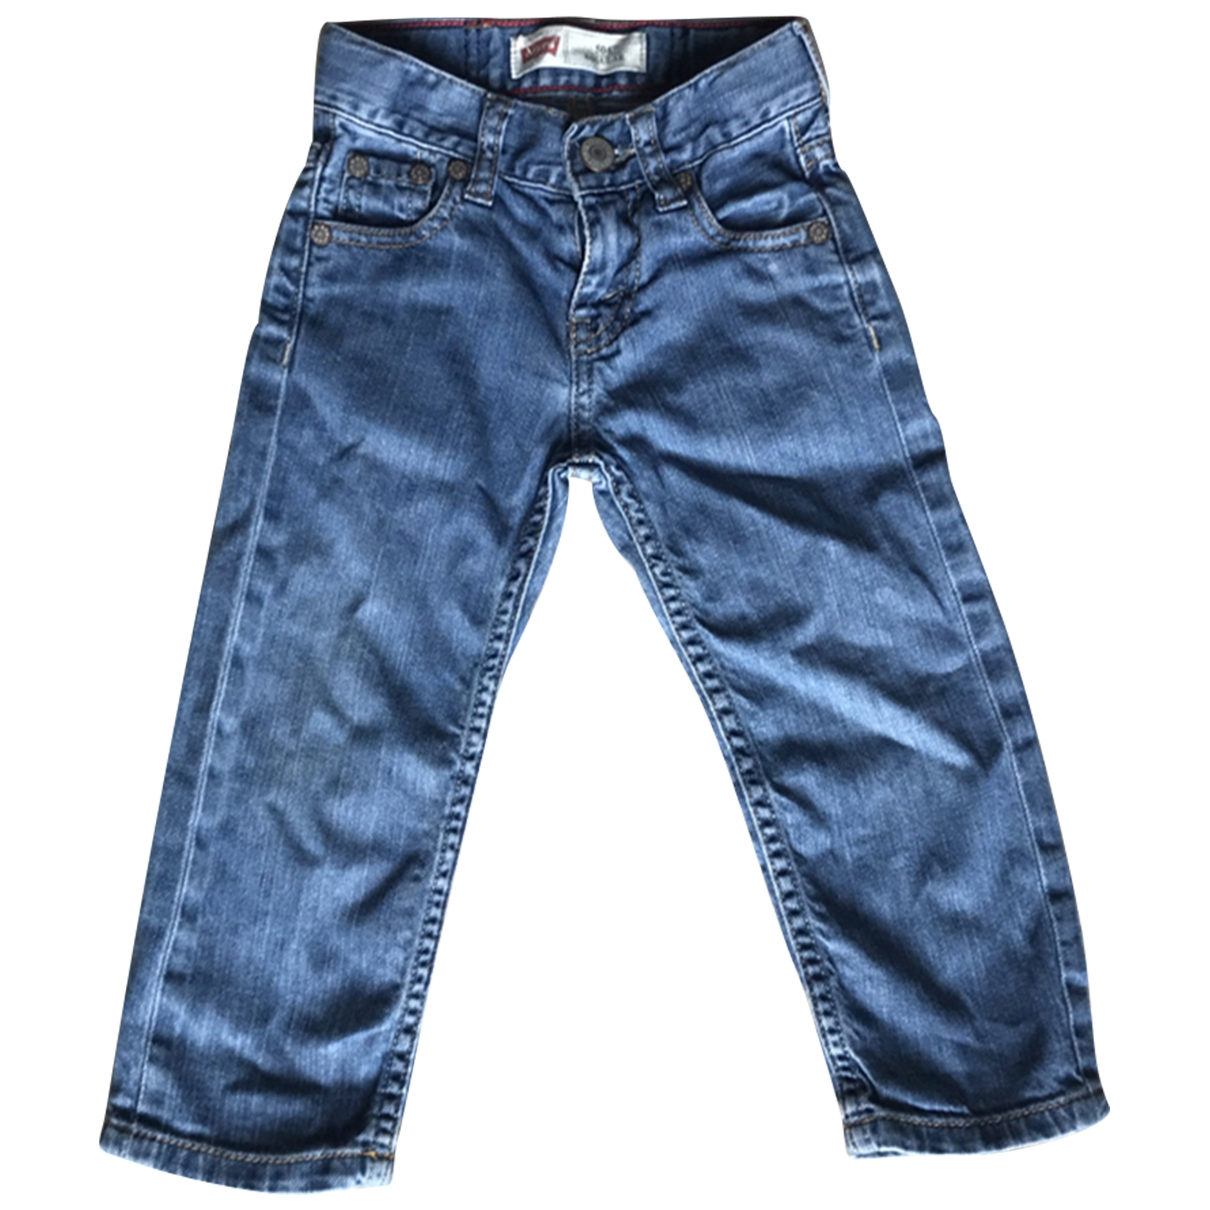 Levi's \N Blue Denim - Jeans Trousers for Kids 2 years - up to 86cm FR